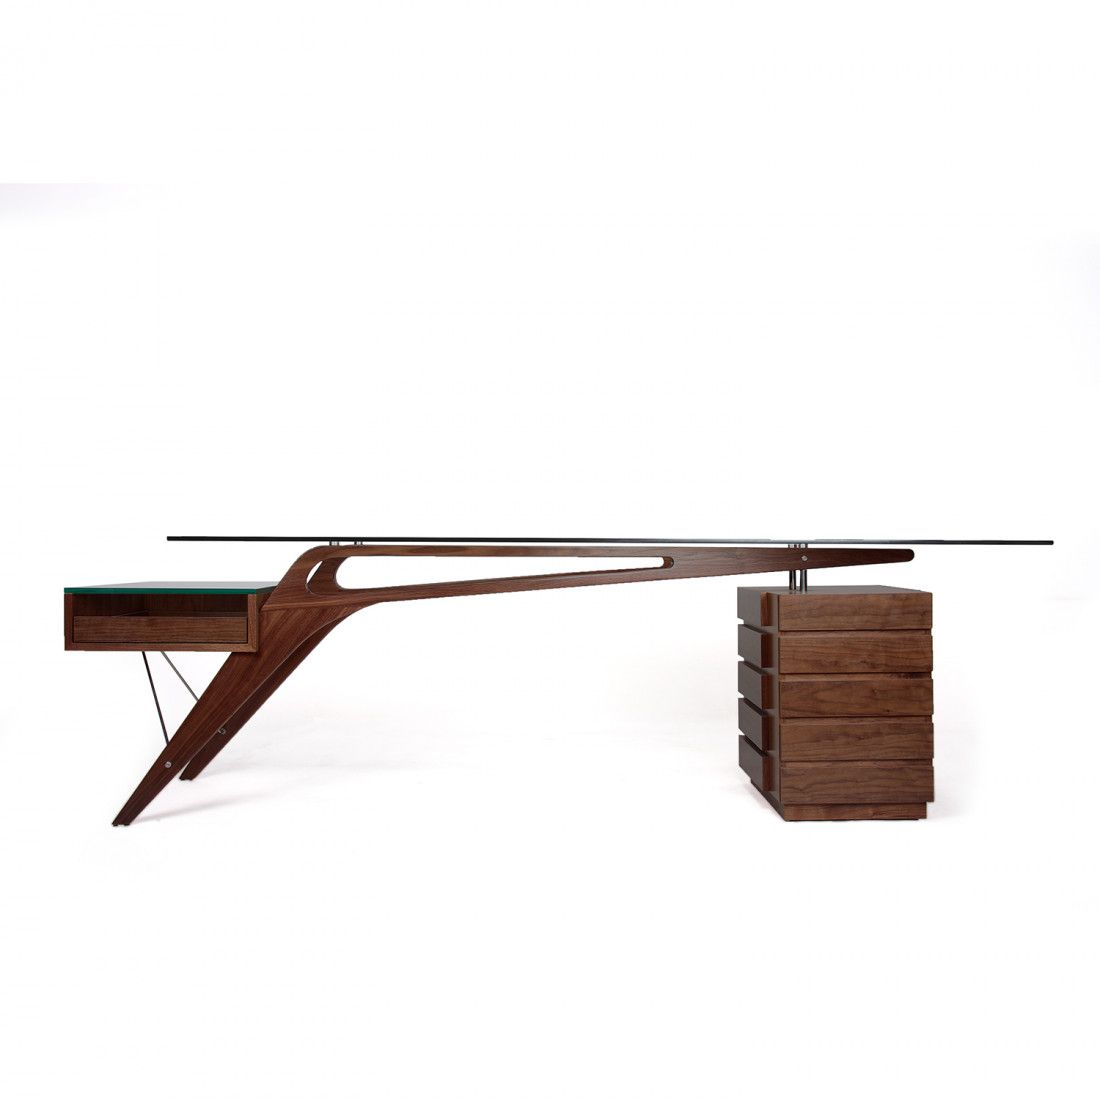 Koen cavour desk walnut desks and real estate office